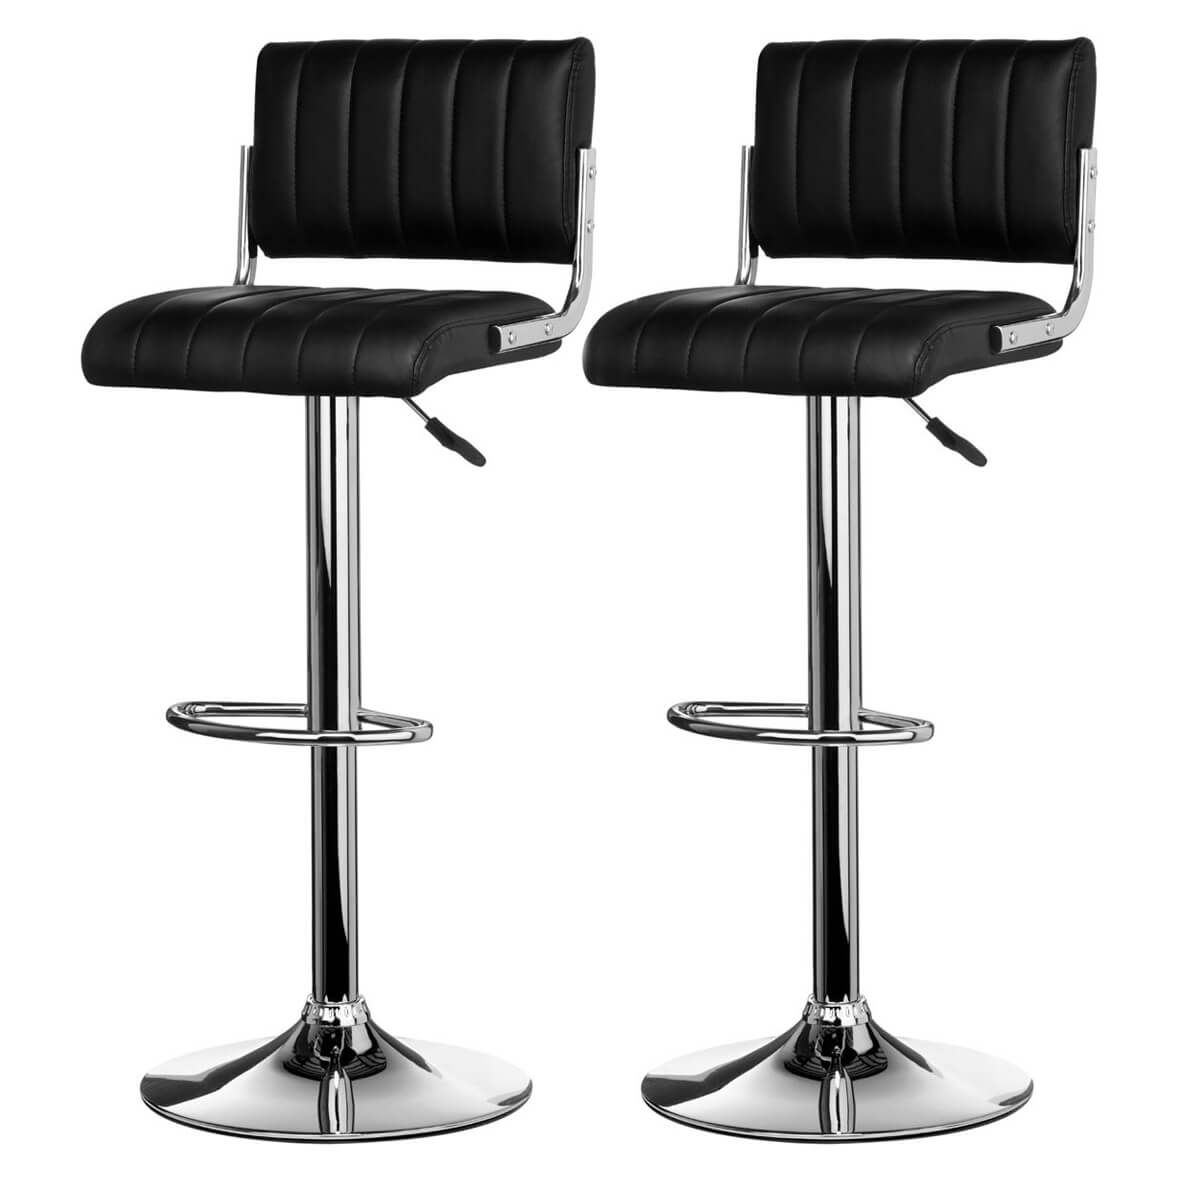 Image of: Neo Bar Stool Black Faux Leather Modern Bar Stools Fads